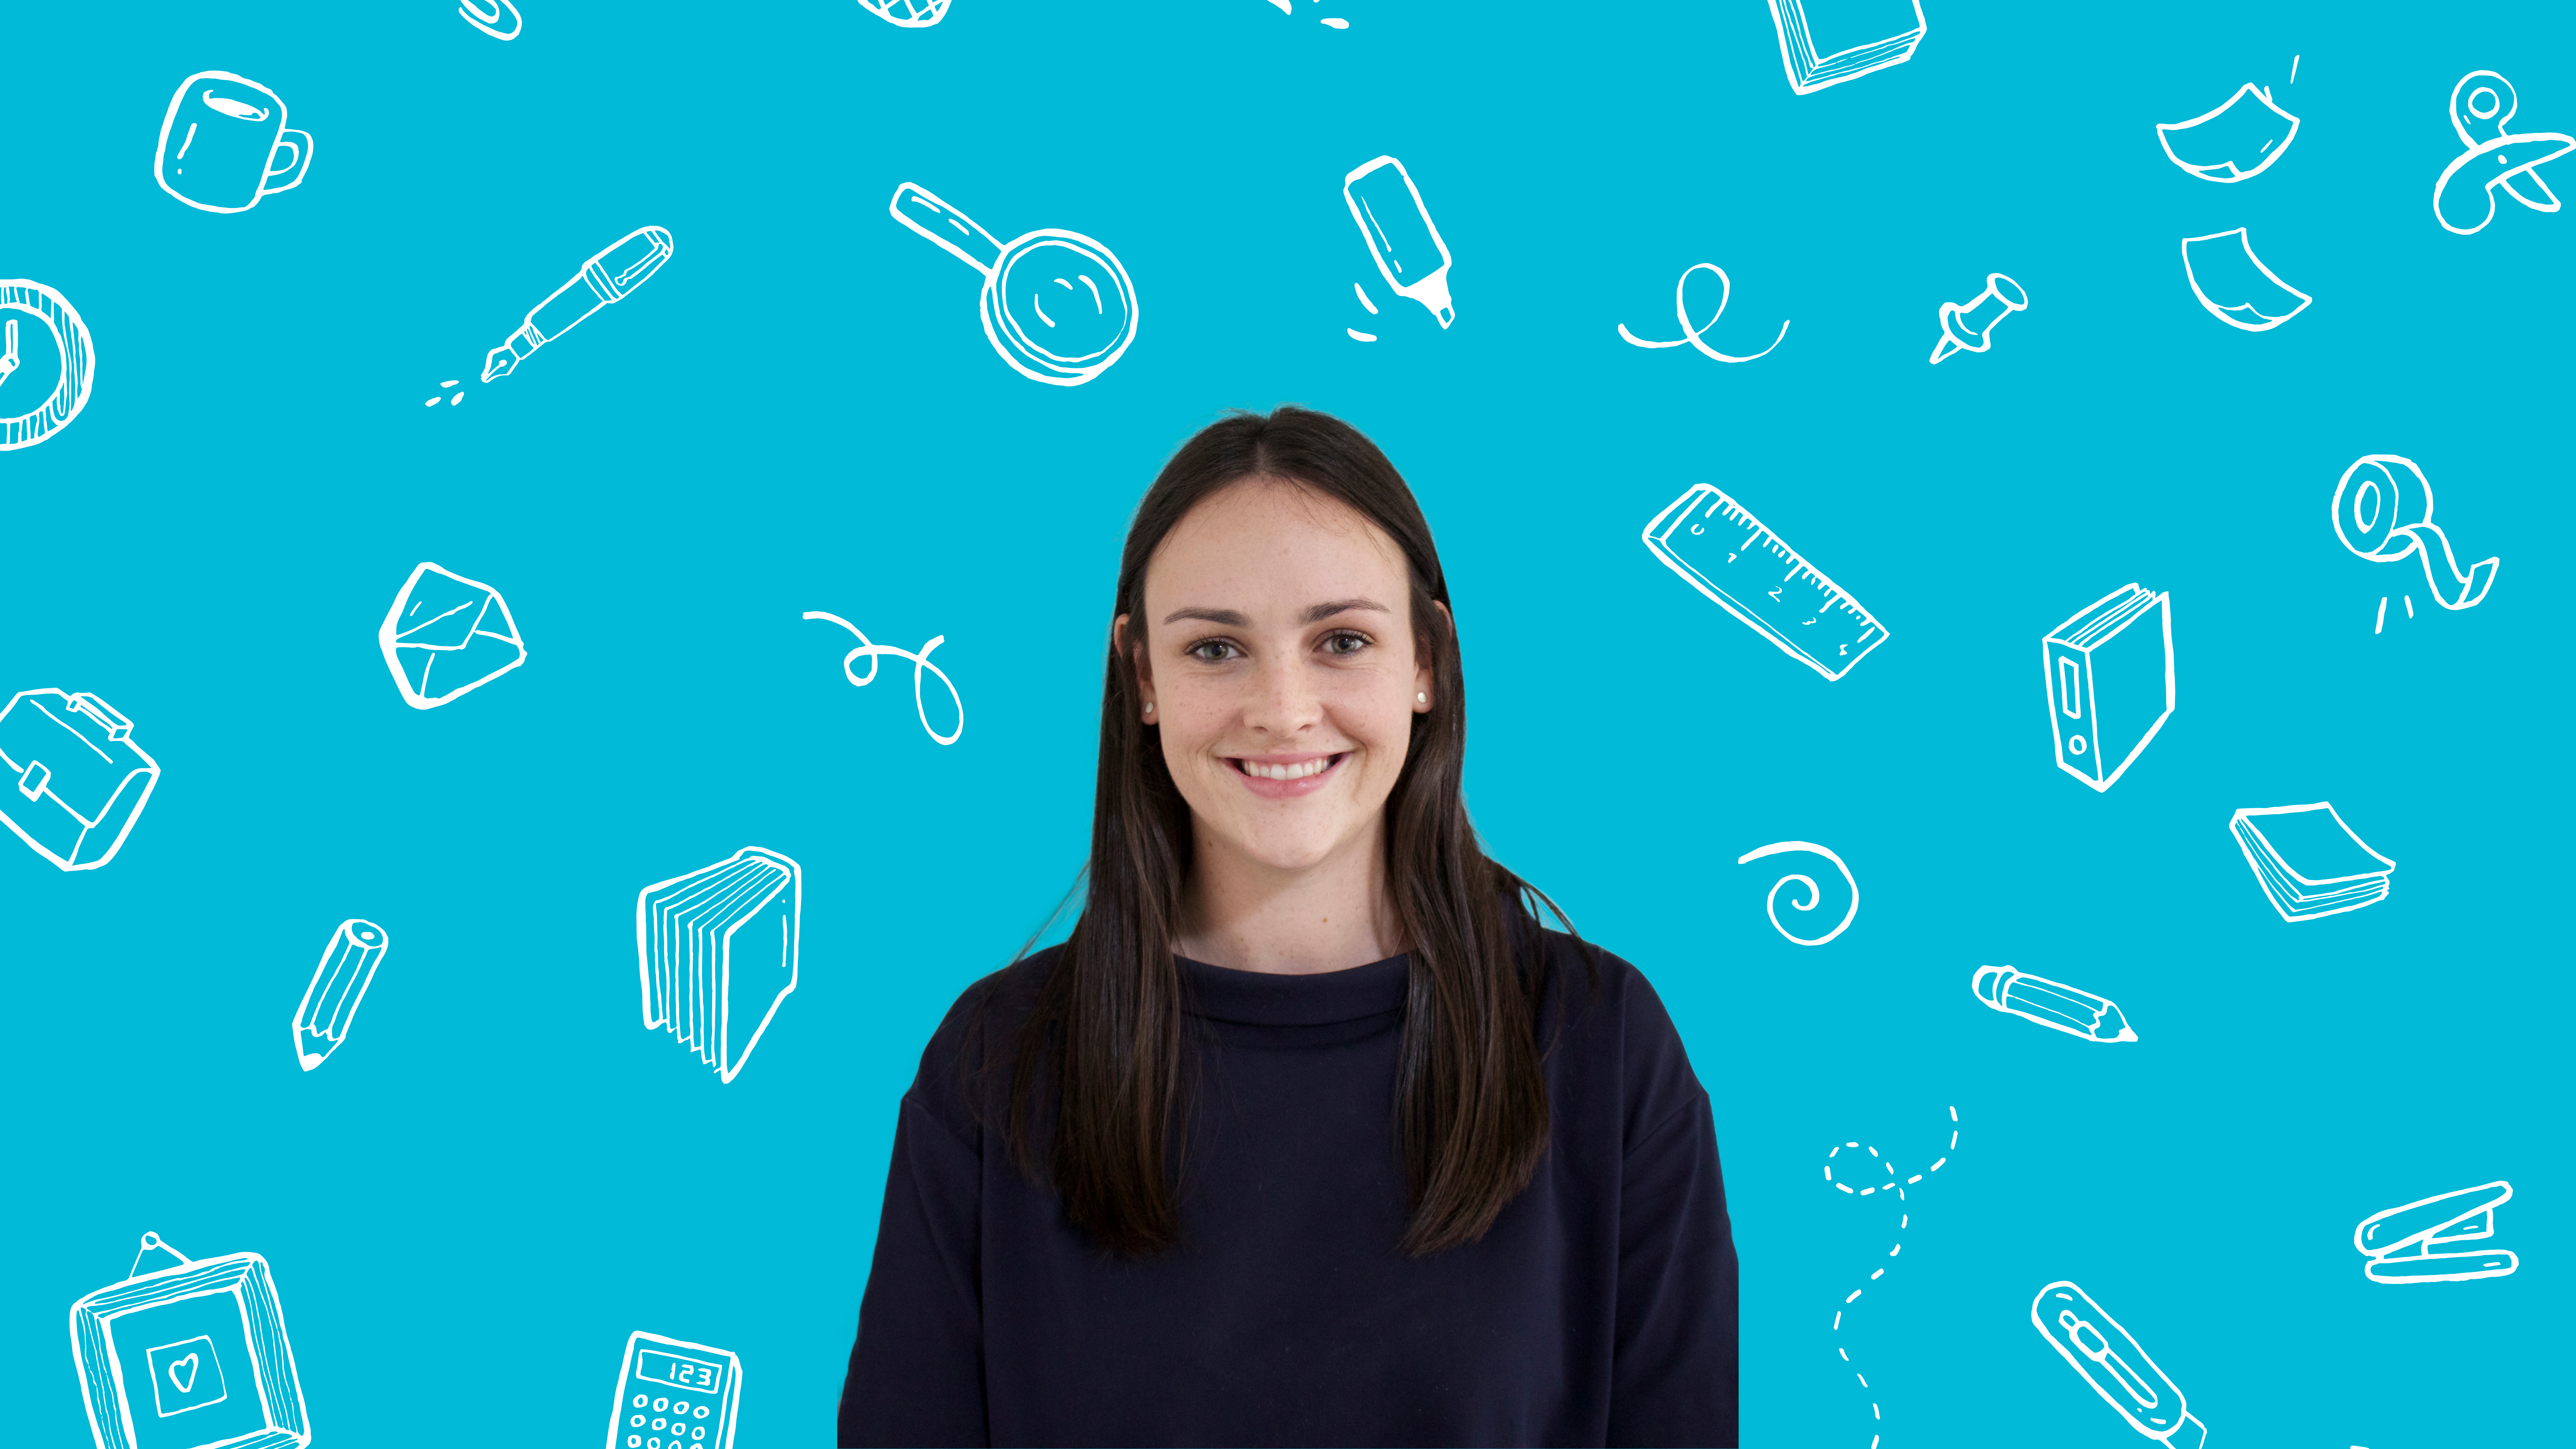 Meet Laura Webster, Strategy Executive & Office Mermaid